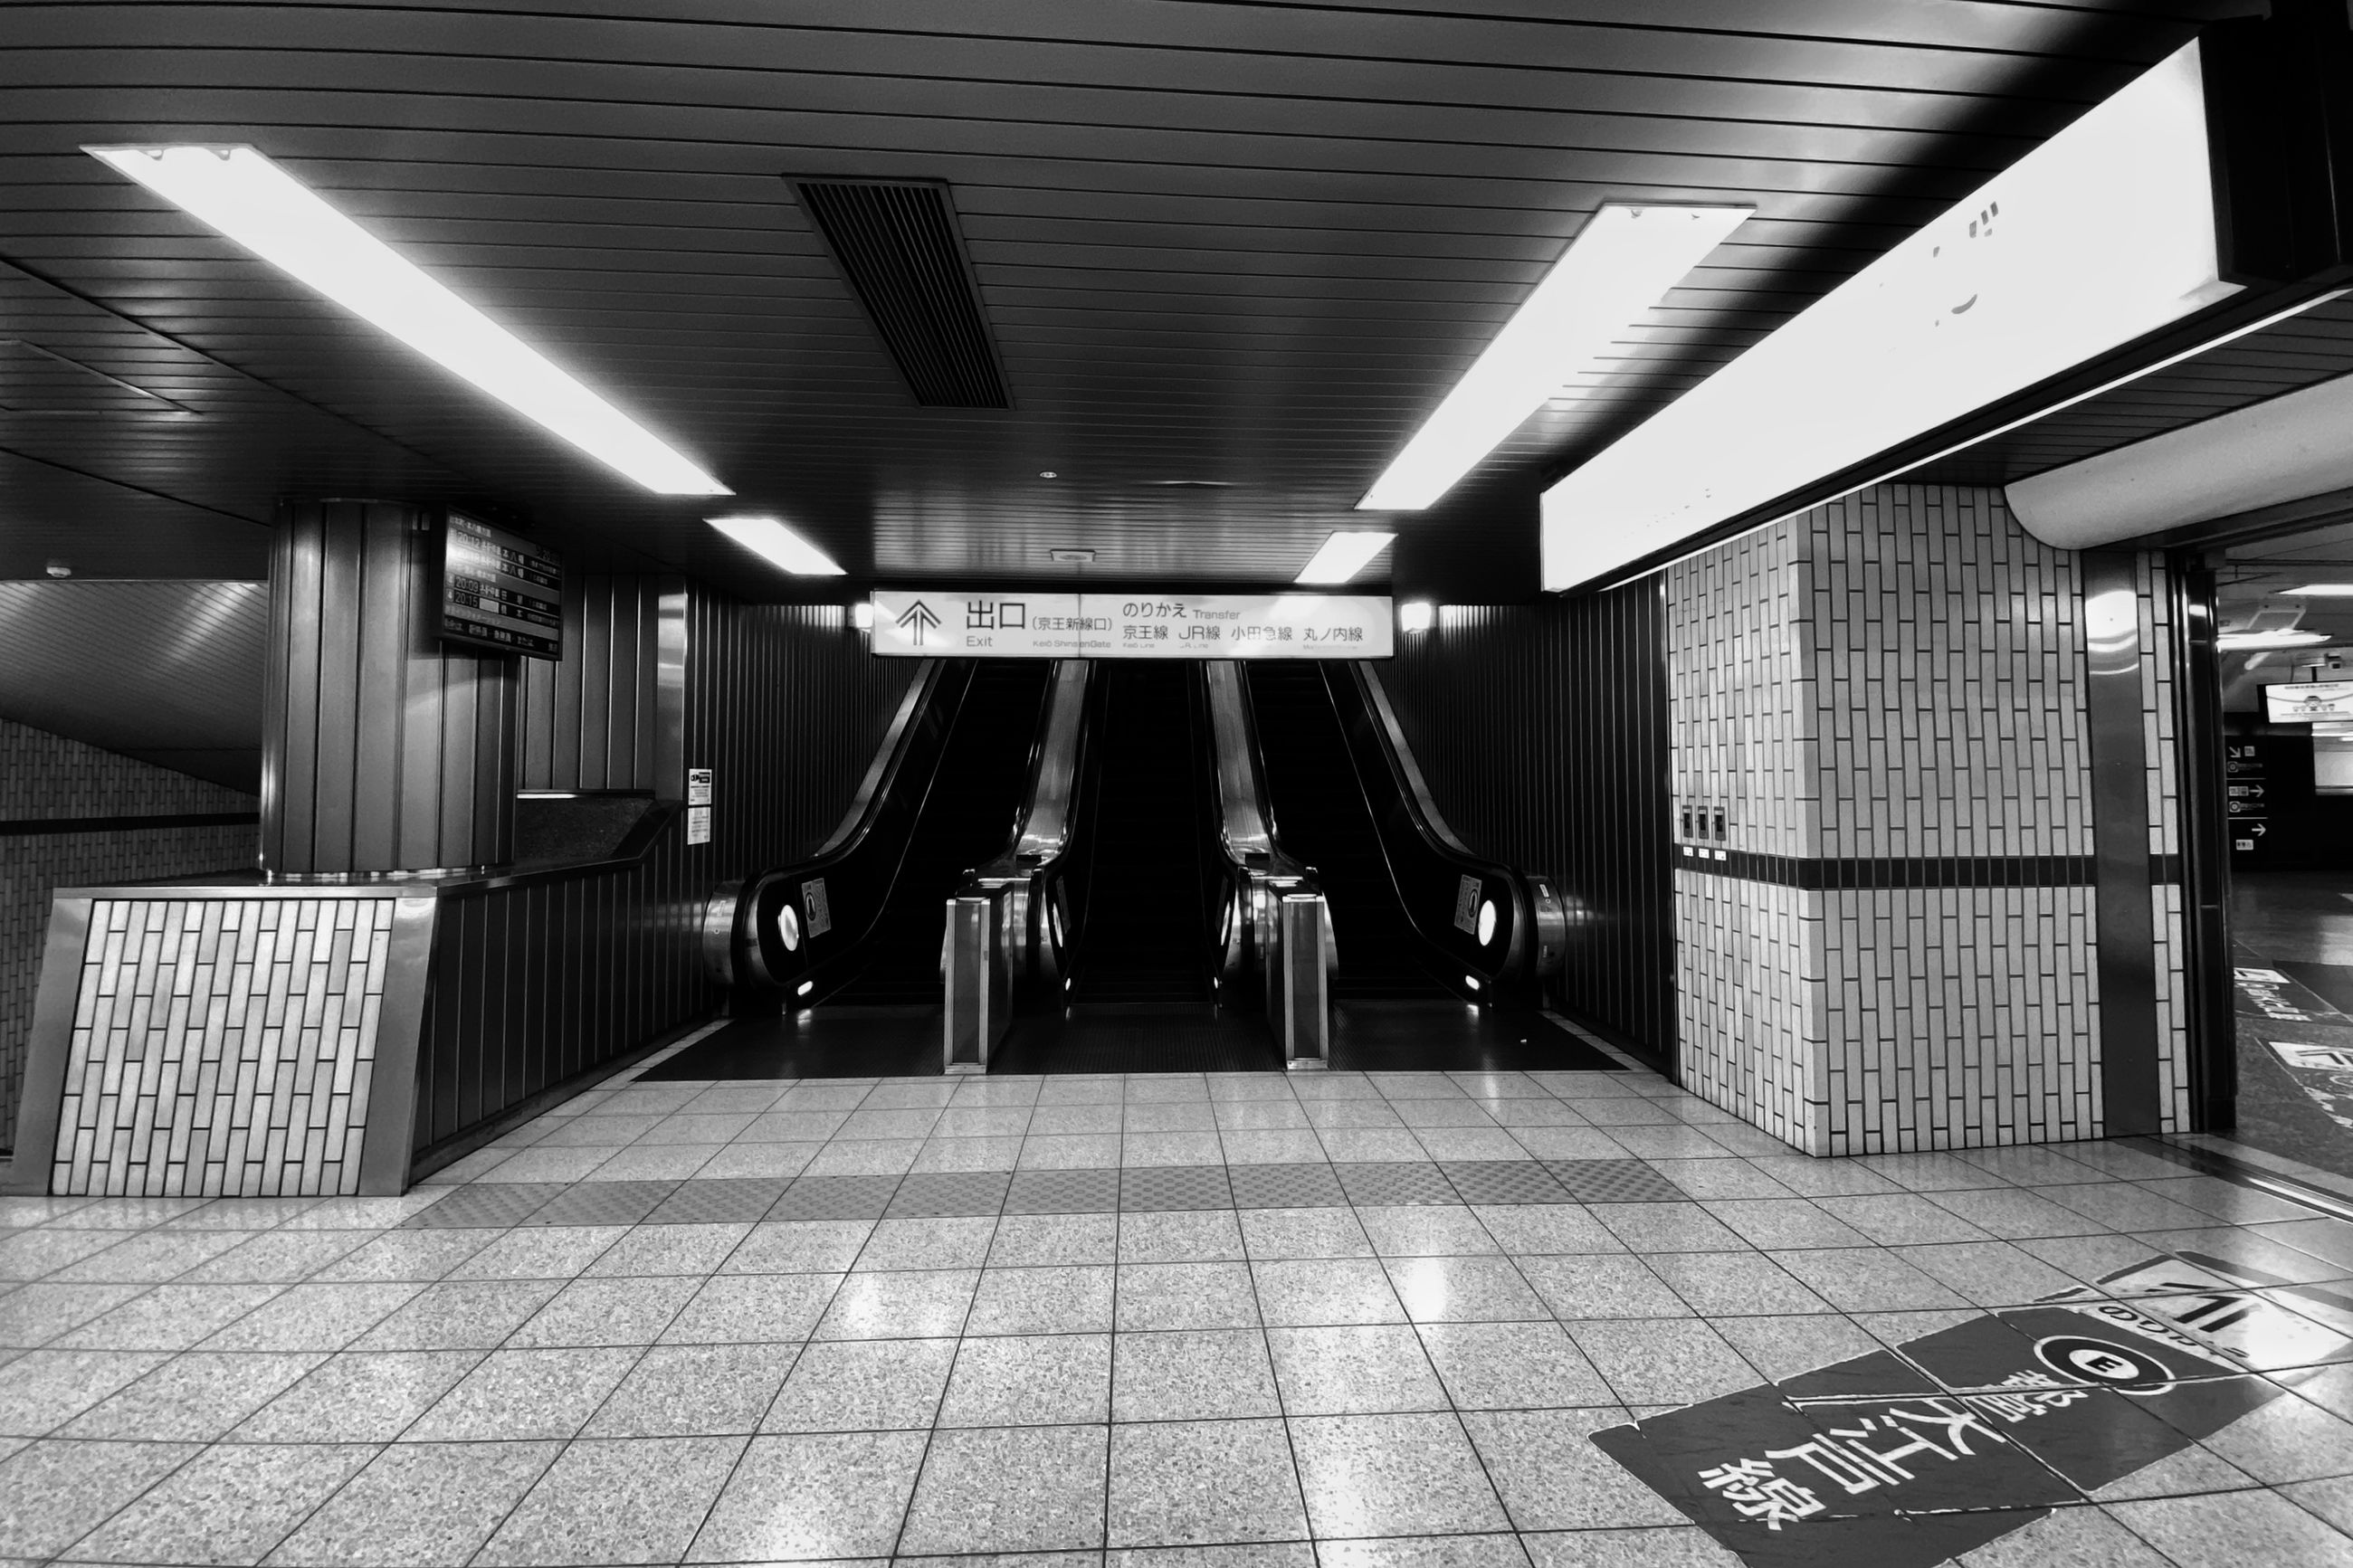 illuminated, architecture, sign, indoors, built structure, communication, public transportation, flooring, ceiling, transportation, direction, subway, architectural column, the way forward, text, tile, no people, tiled floor, subway station, information, modern, light, station